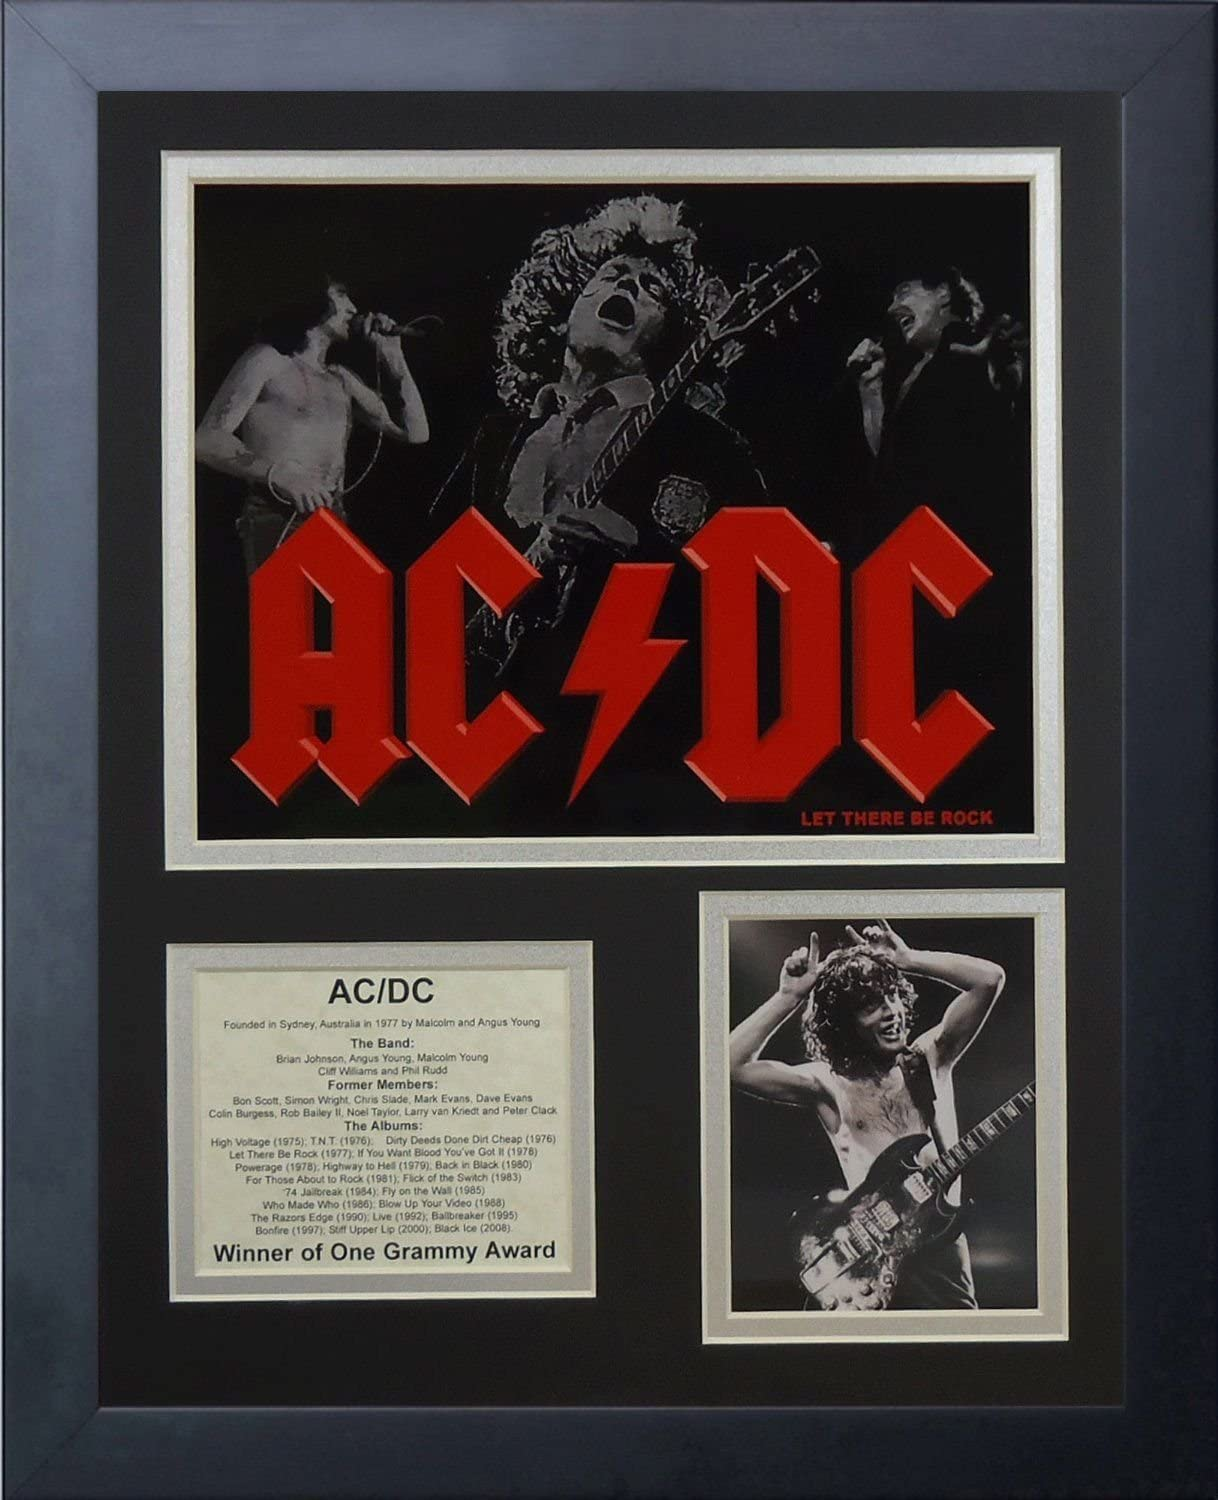 11x14 FRAMED AC/DC ALBUM LIST BON SCOTT BRIAN JOHNSON PHIL RUDD 8X10 PHOTO 1973 71yWVIGKdAL